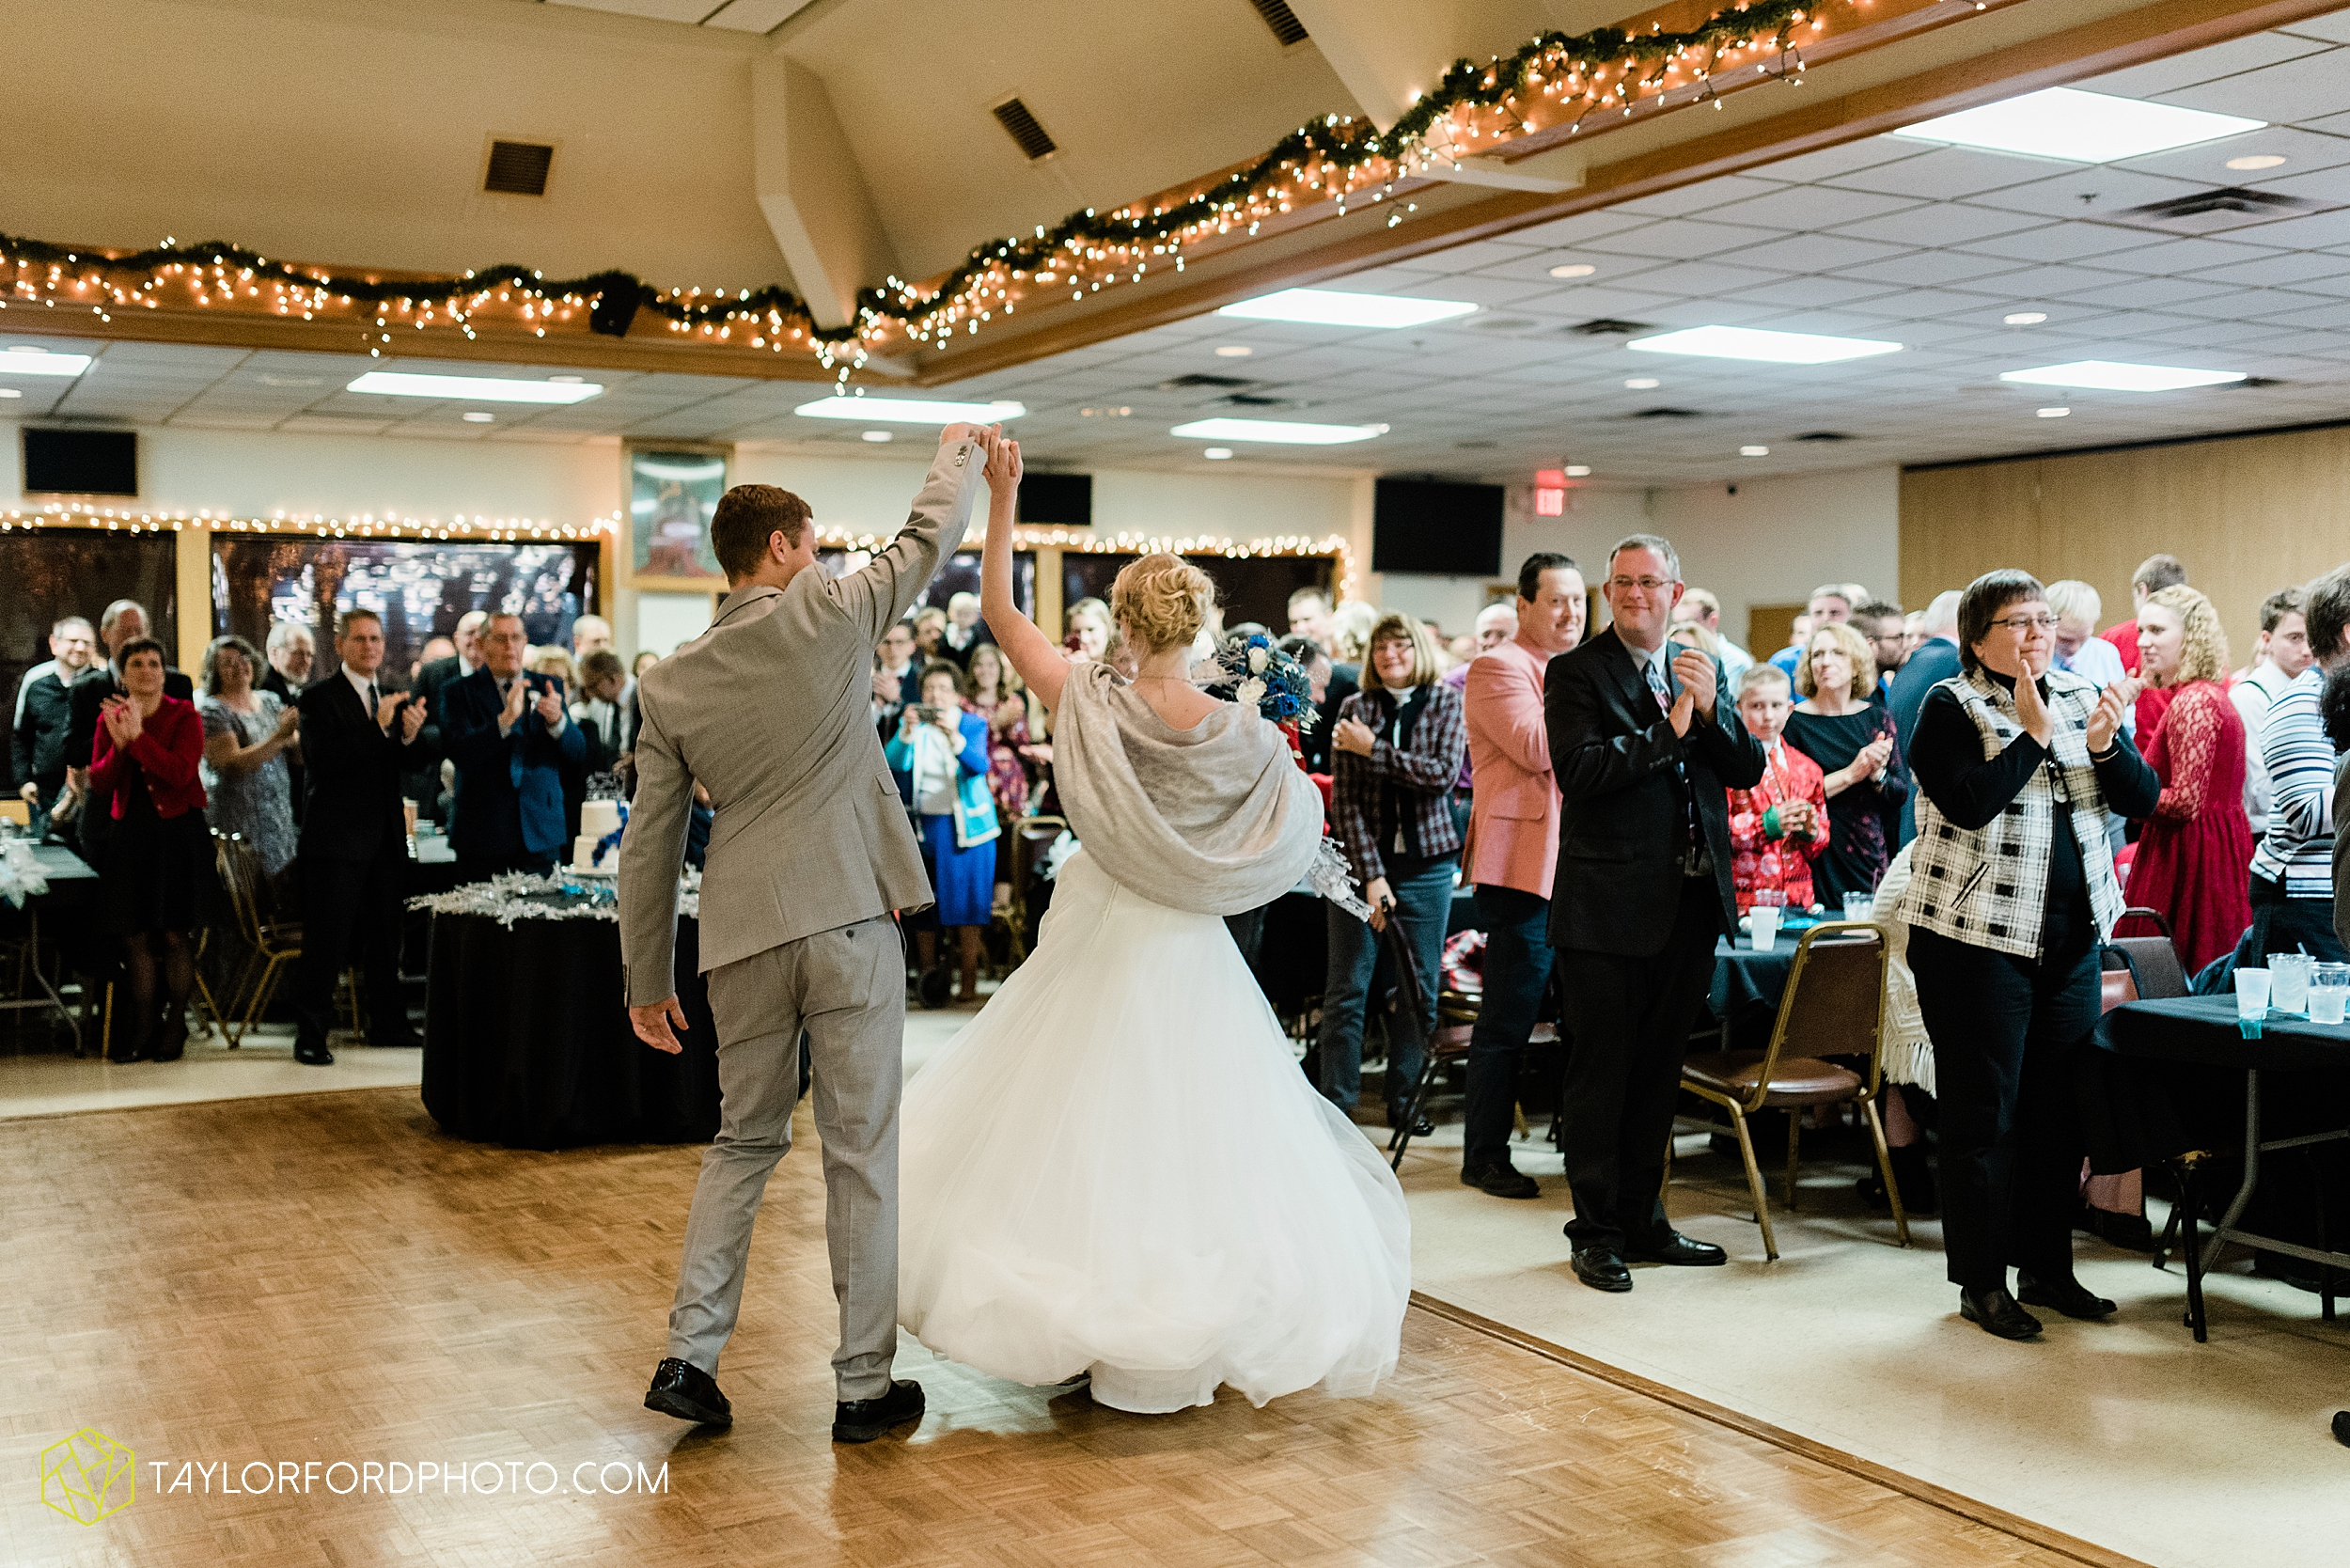 pleasant-view-church-christmas-celina-fraternal-order-of-eagles-reception-wedding-wren-willshire-van-wert-ohio-photography-taylor-ford-hirschy-photographer_2194.jpg